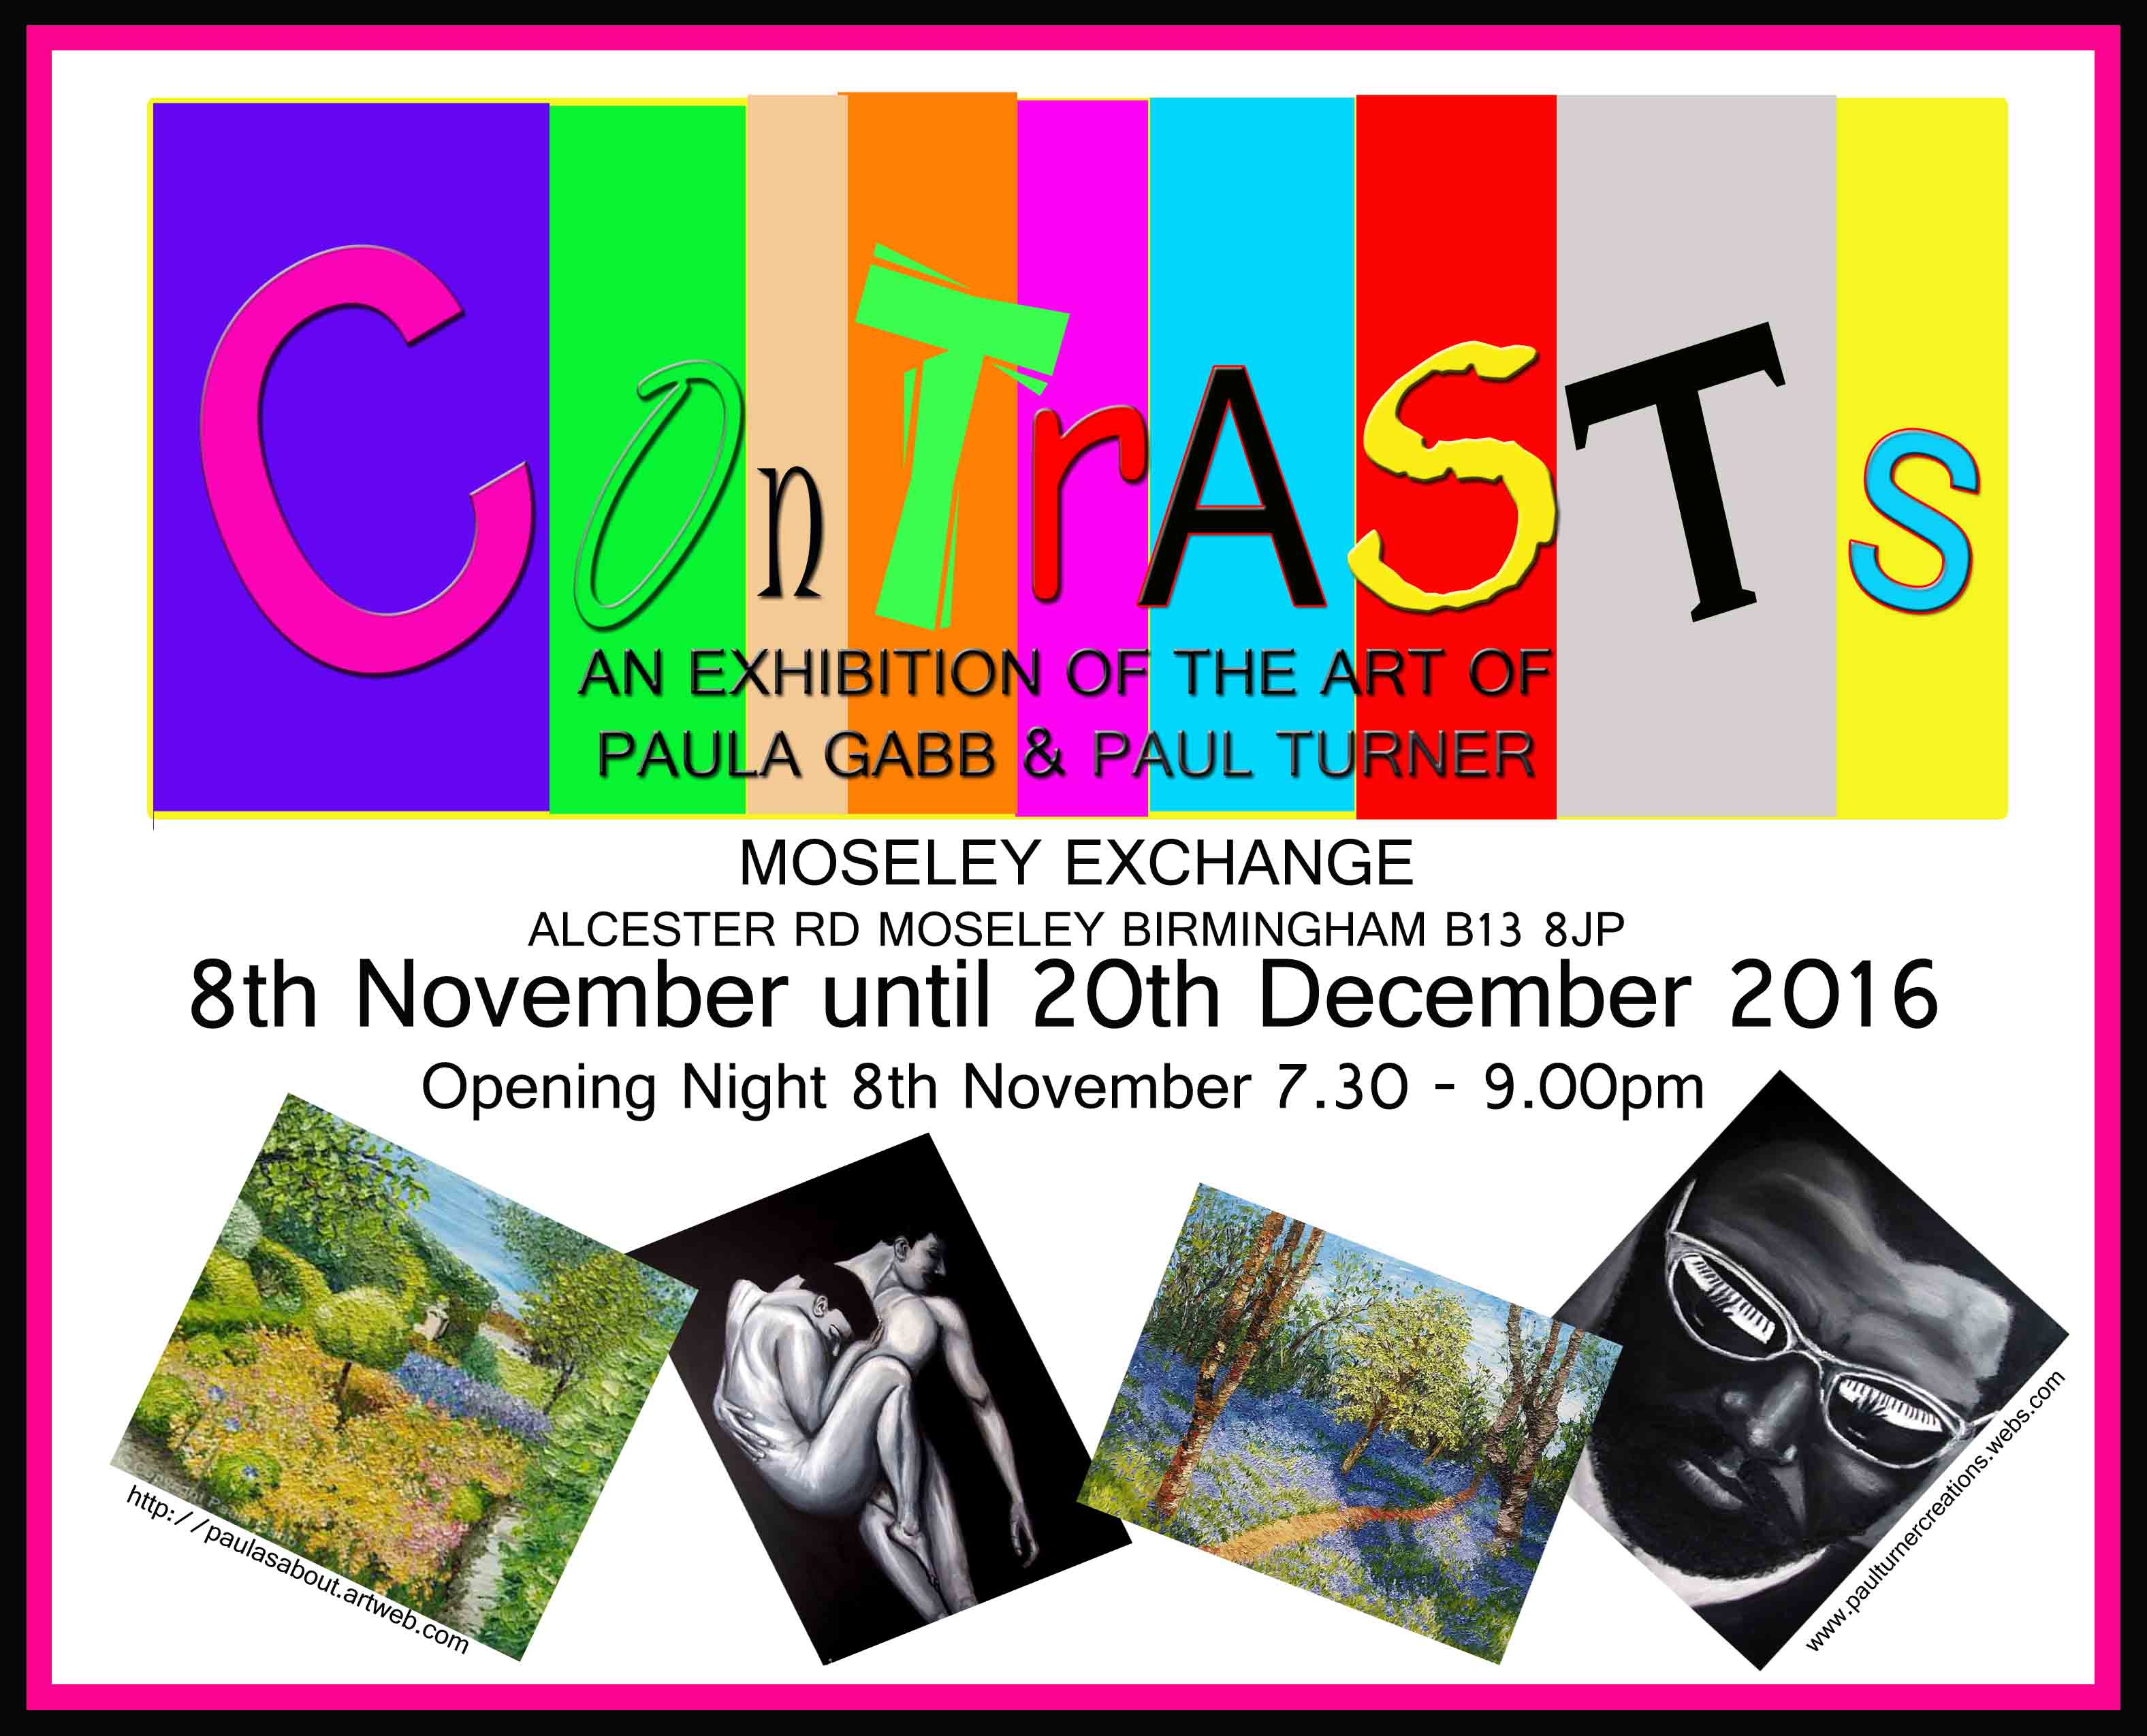 'CONTRASTS' Art Exhibition